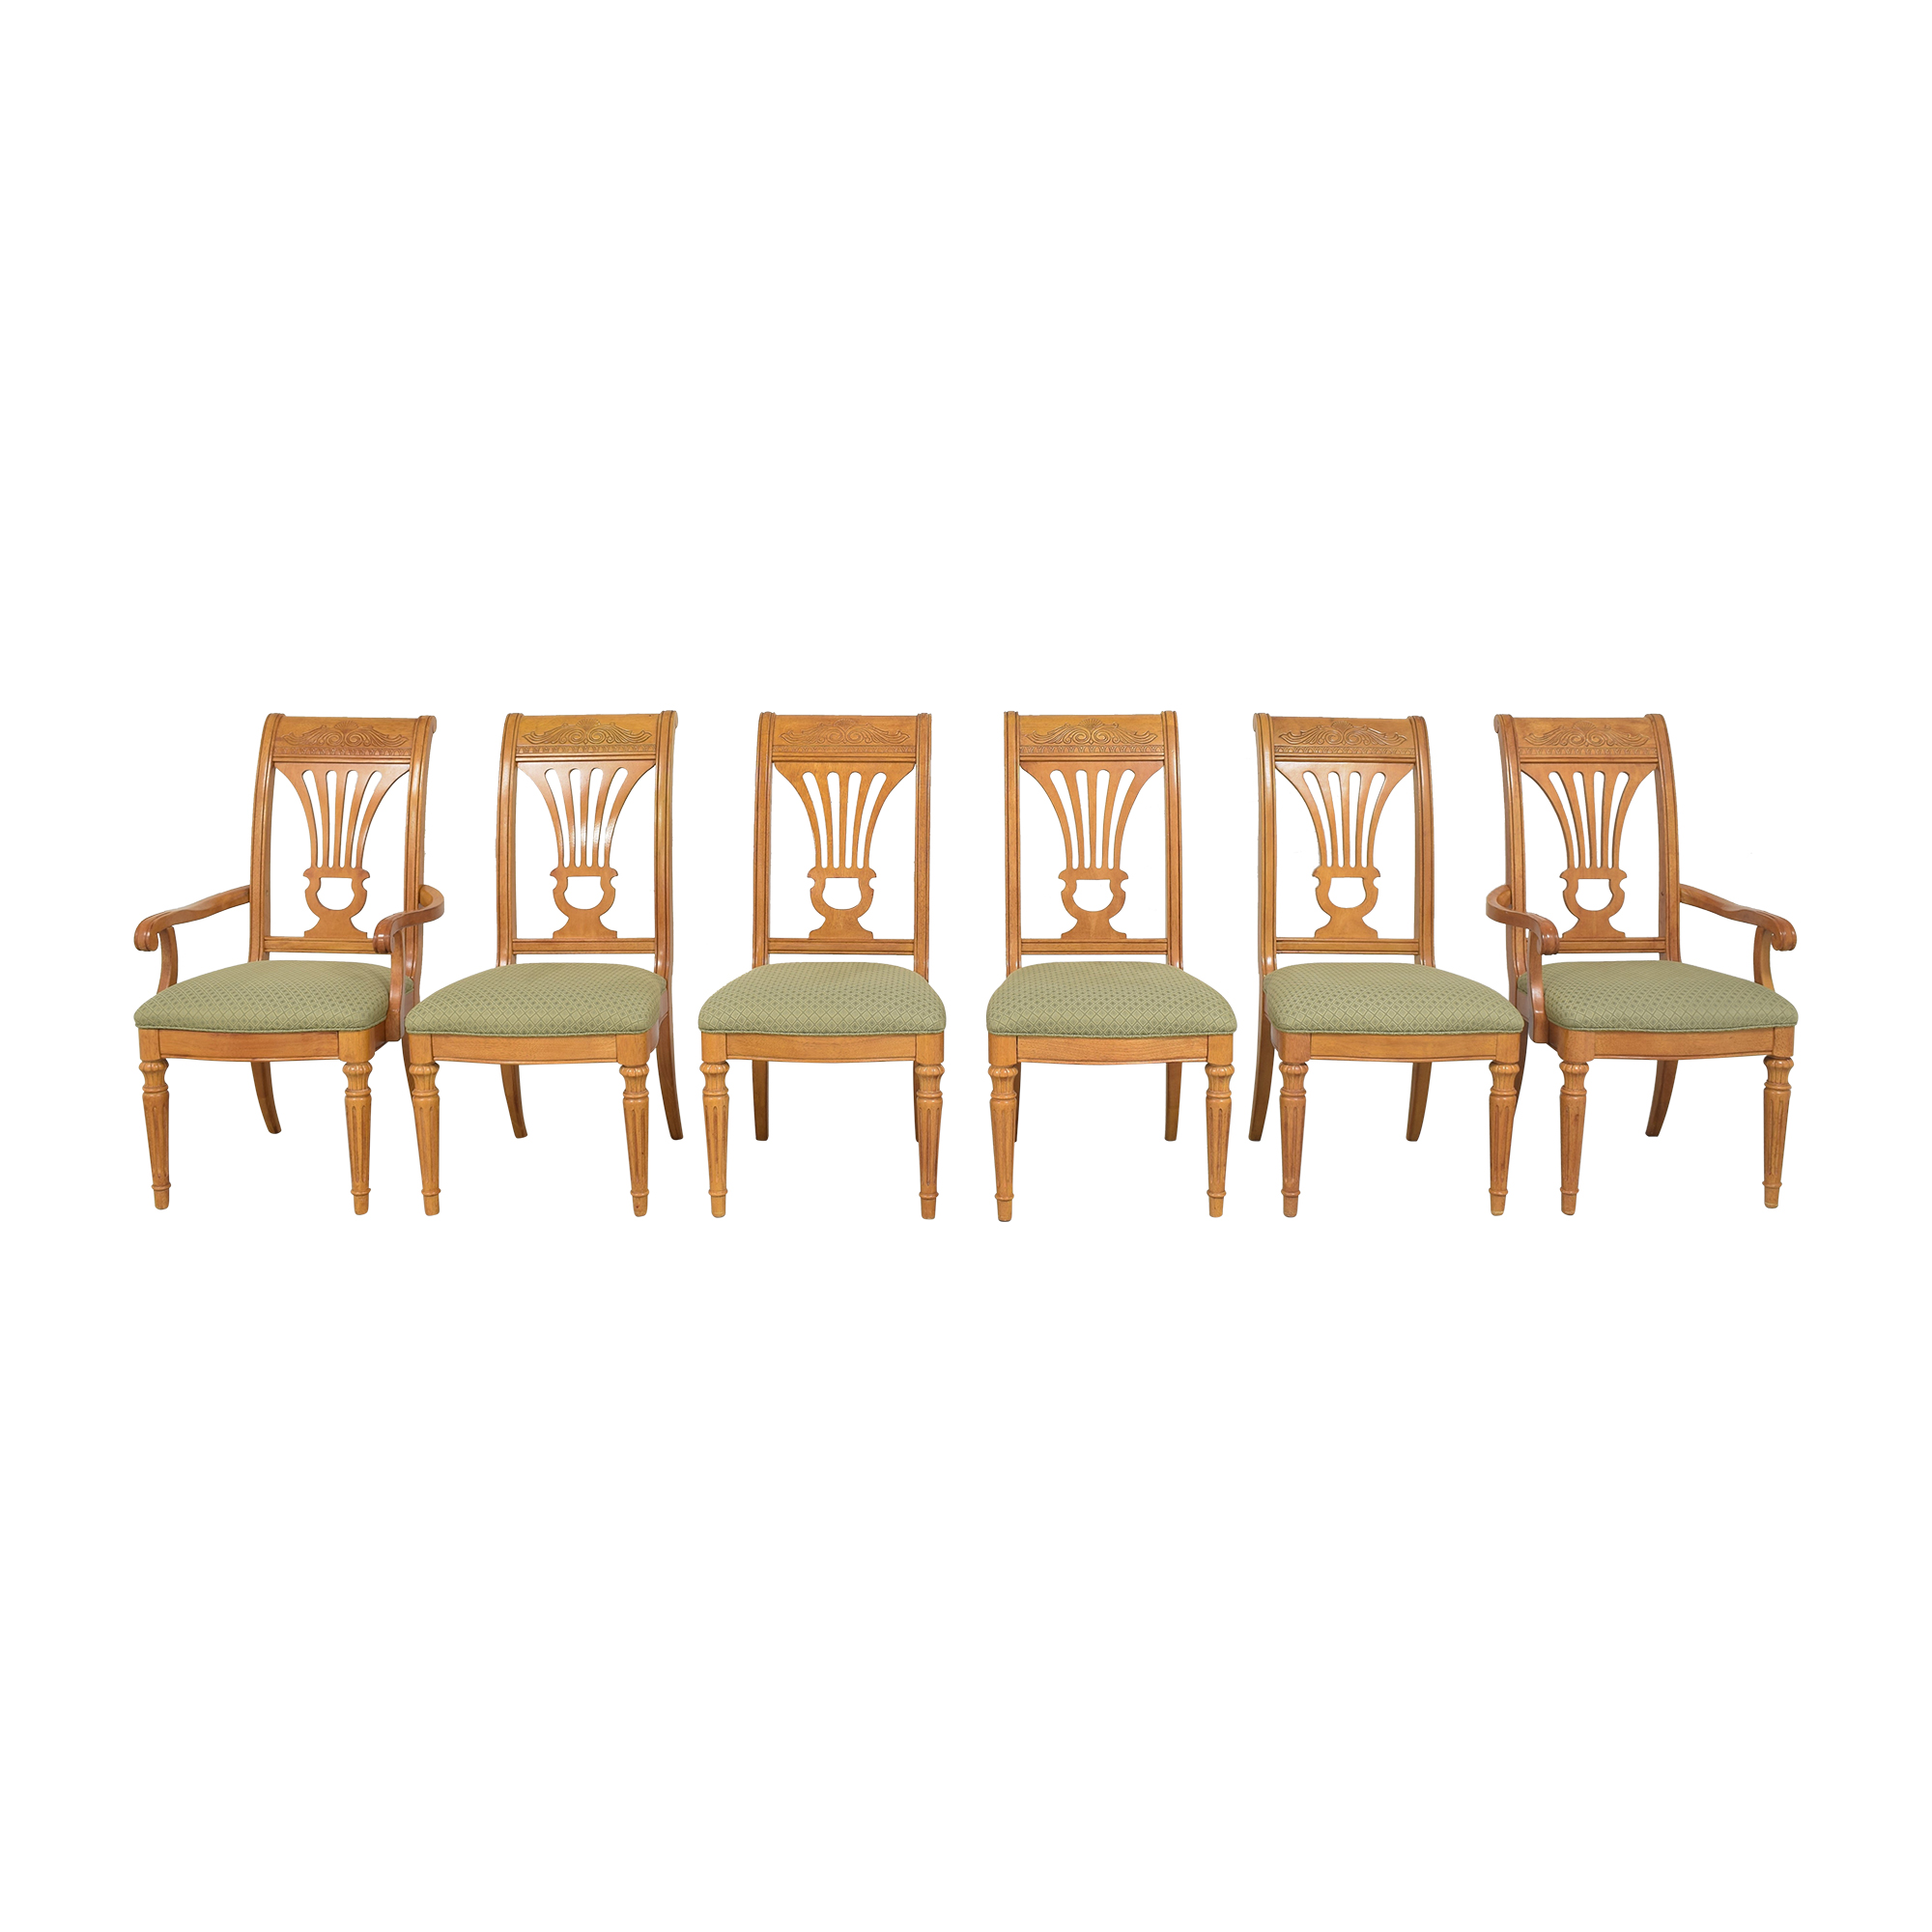 Universal Furniture Universal Furniture Upholstered Dining Chairs ct